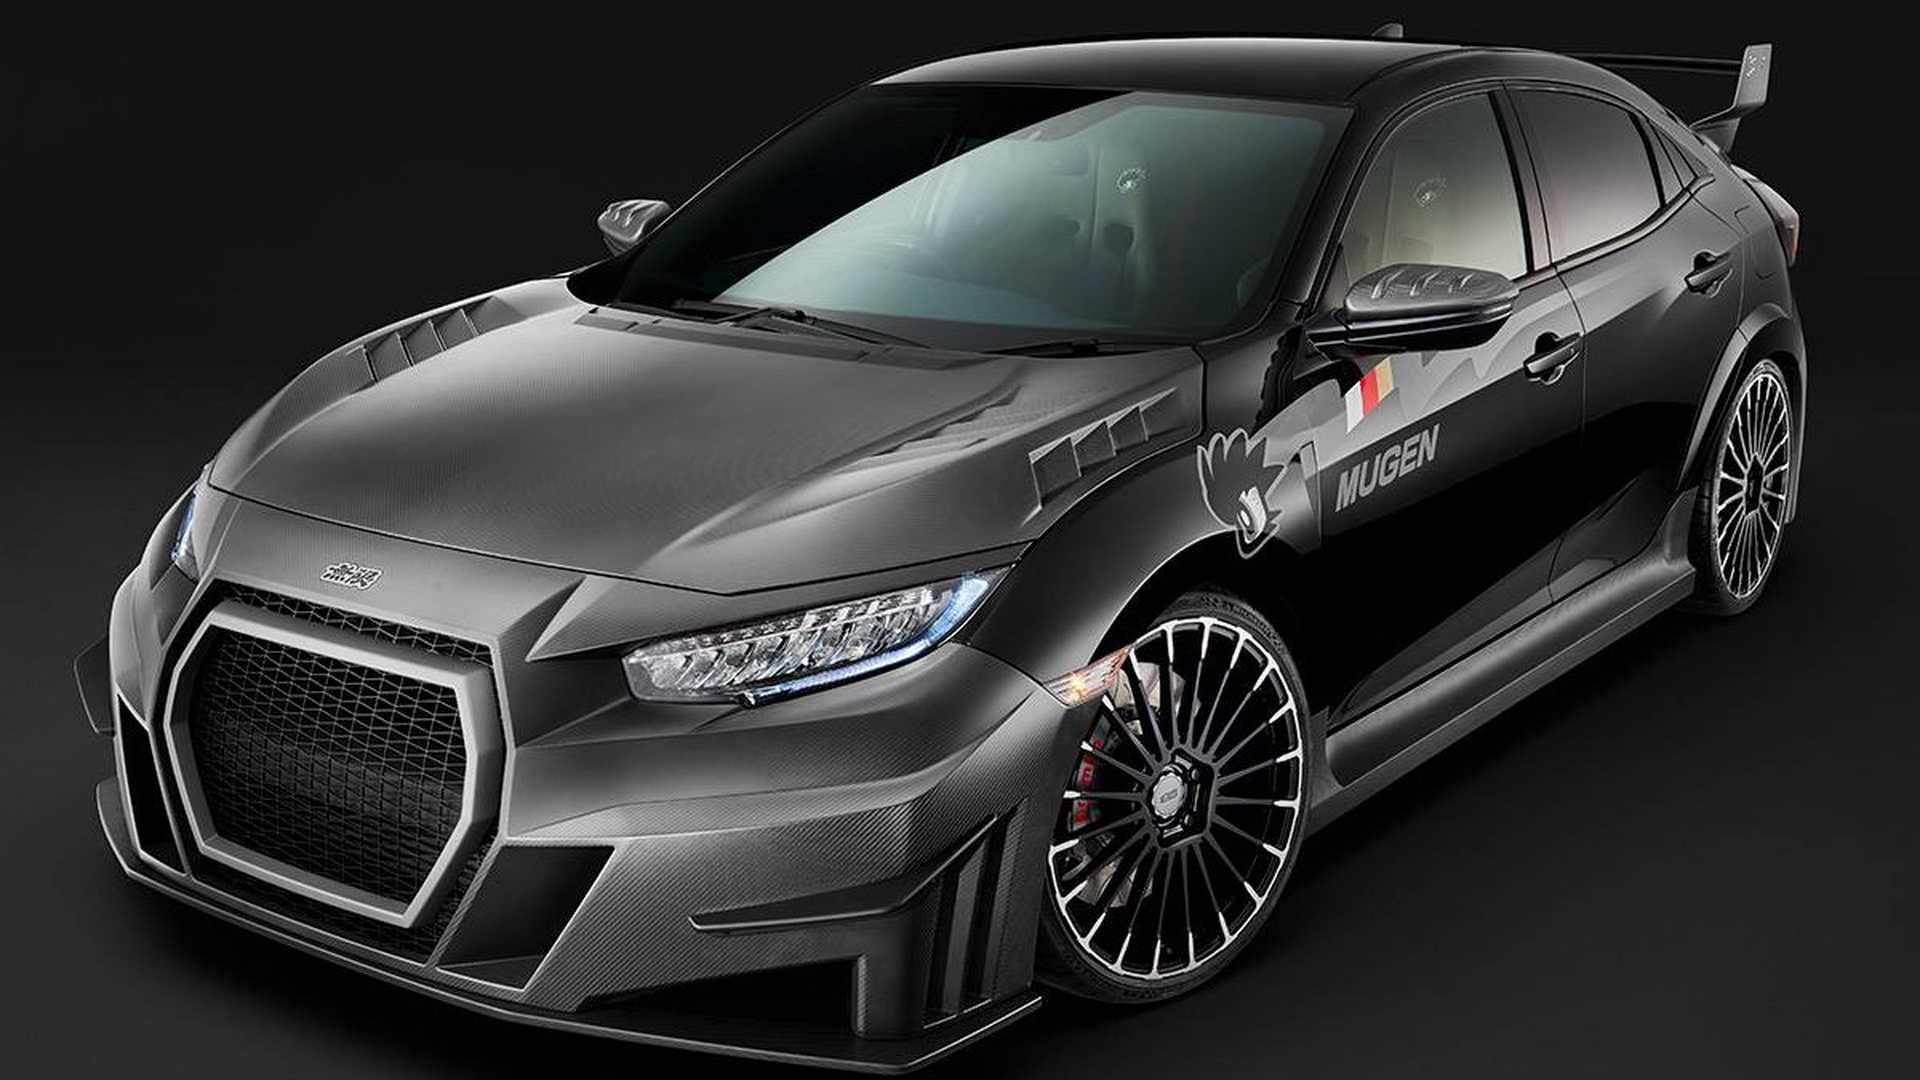 honda-civic-type-r-mugen-rc20gt-package-pre-production-model